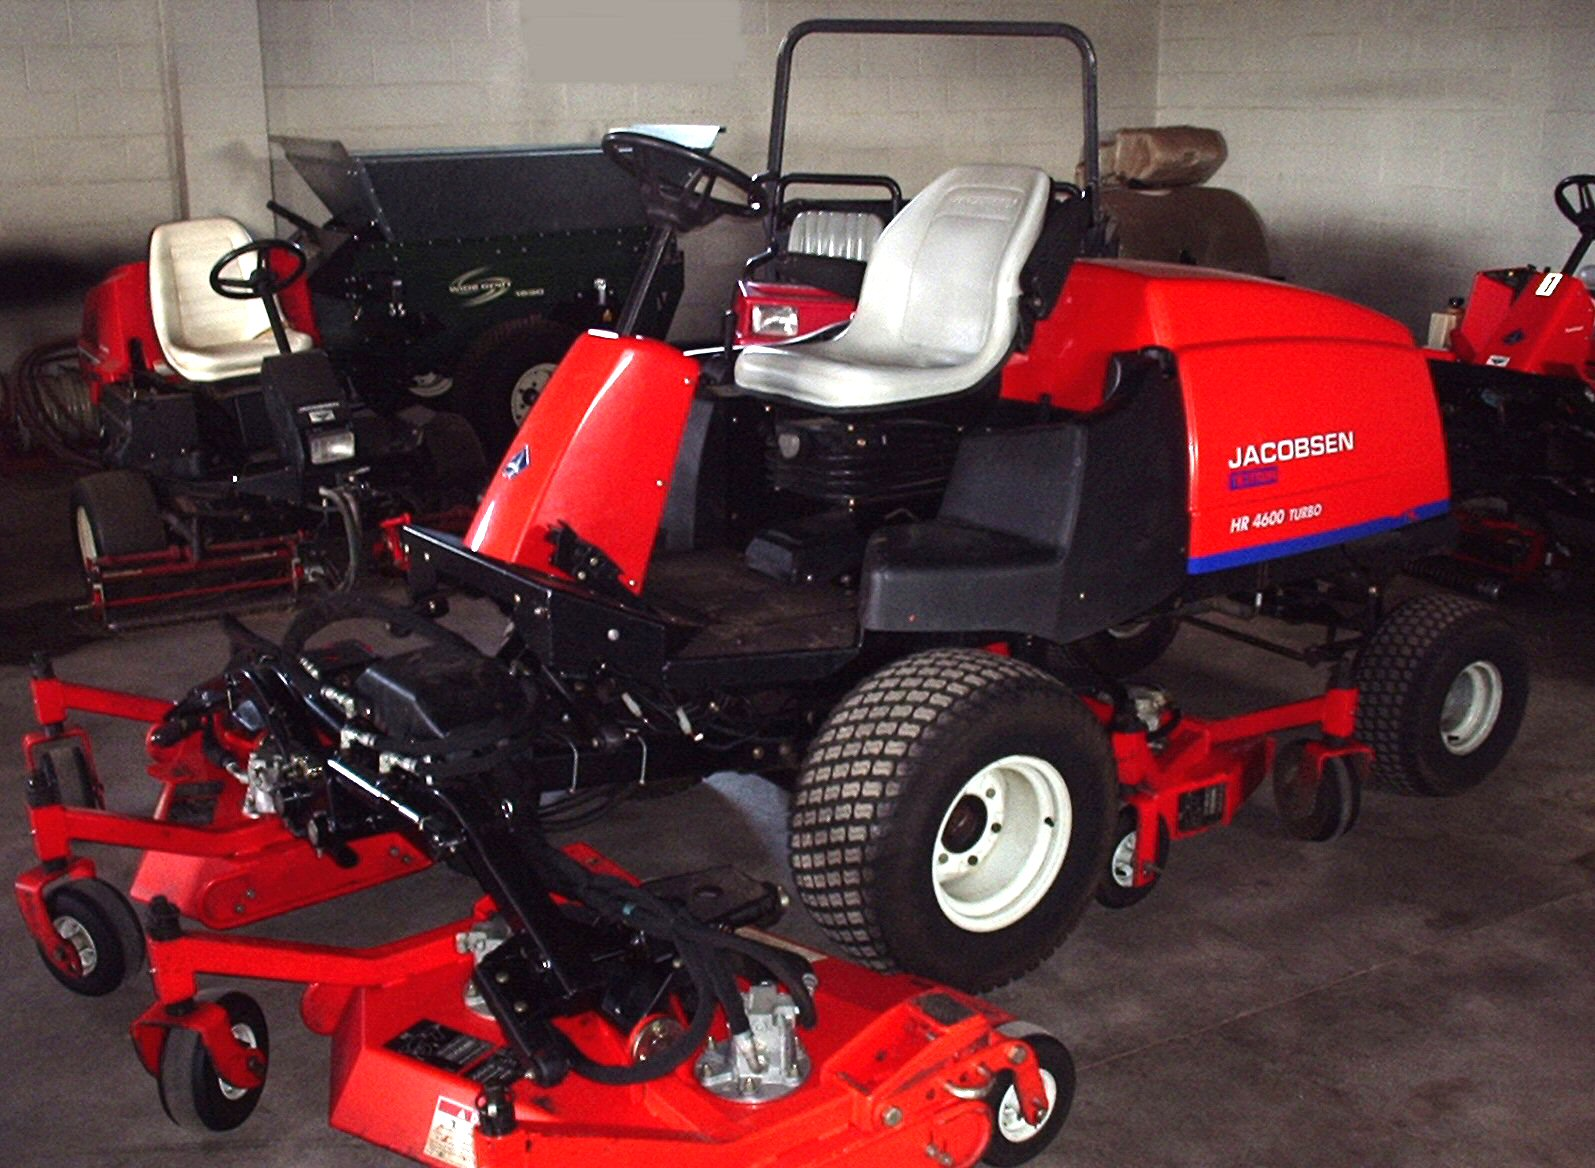 Sanford Alderfer Auction Company Golf Course Turf Equipment Jacobsen Cart Wiring Diagram Gallery Of Photos